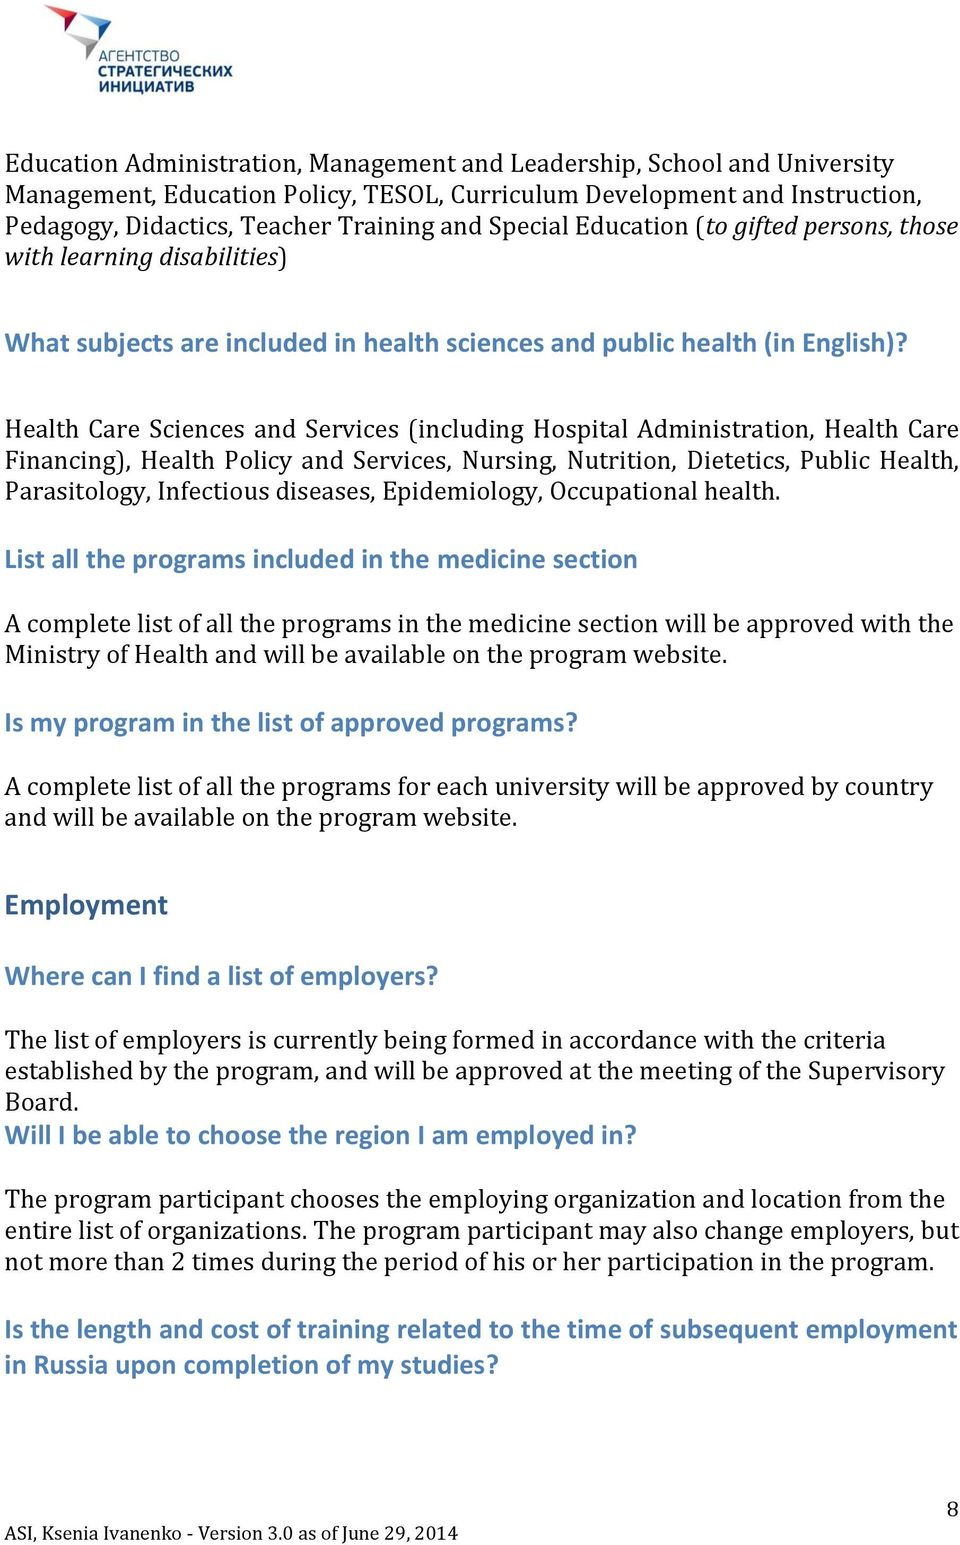 Health Care Sciences and Services (including Hospital Administration, Health Care Financing), Health Policy and Services, Nursing, Nutrition, Dietetics, Public Health, Parasitology, Infectious